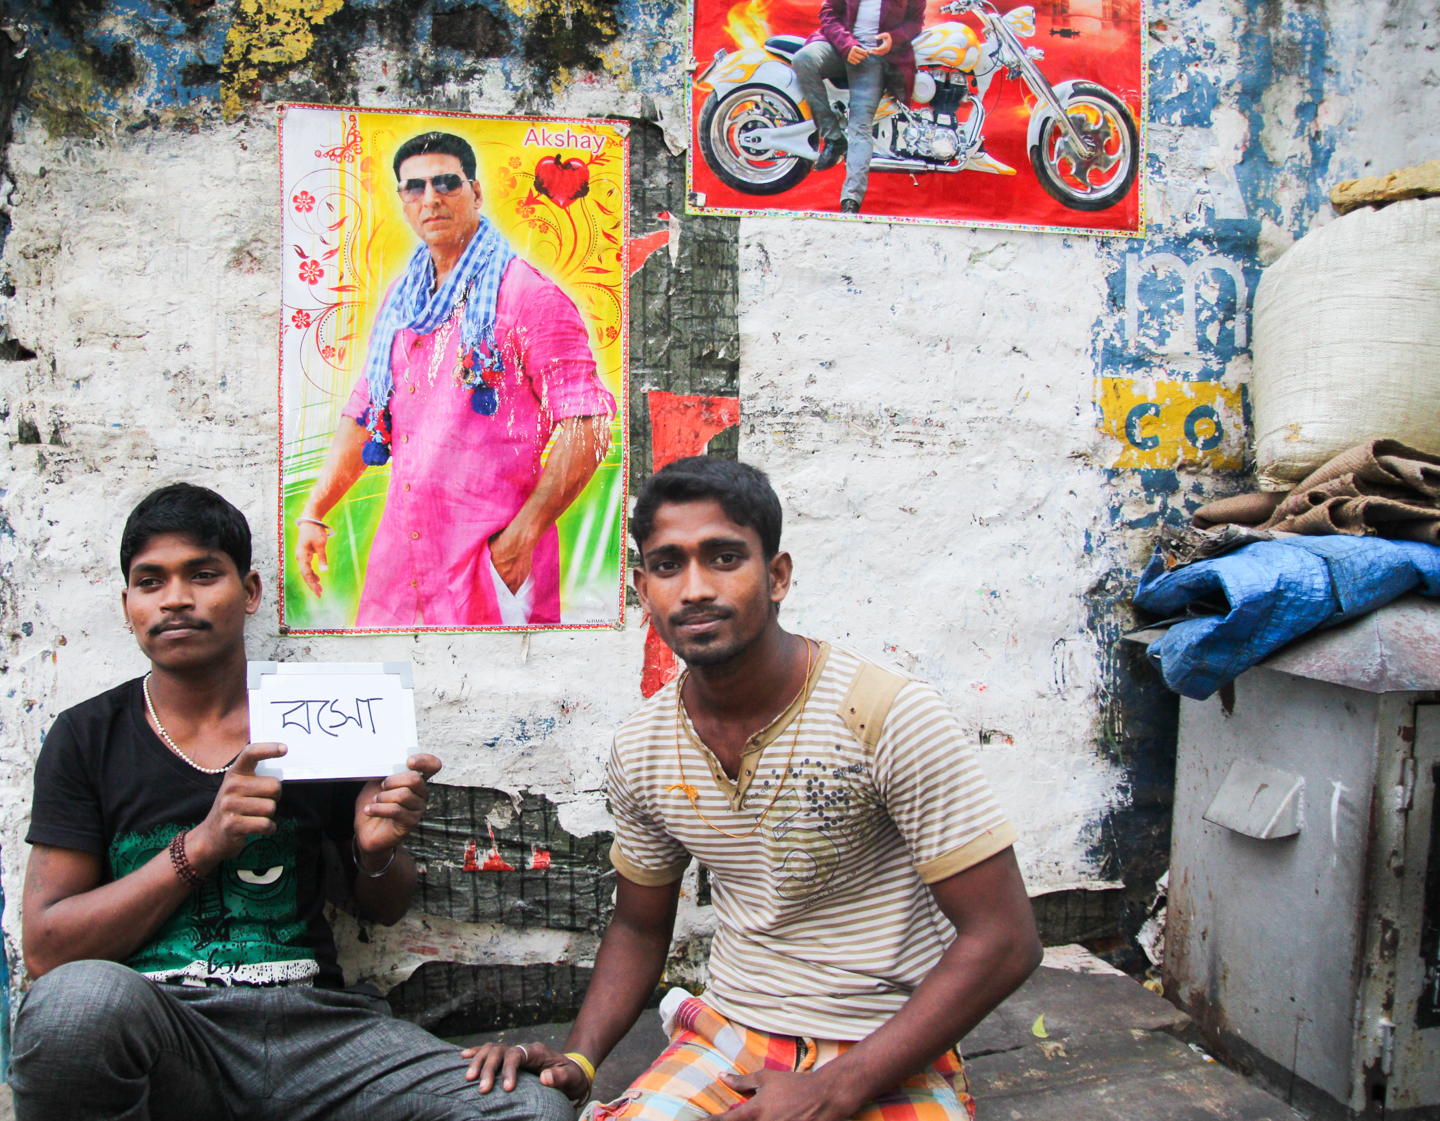 Bablu Pal, right, and his best friend always enjoy their cups of chai sitting under a poster of Akshay Kumar, one of their favorite film heroes in Kalighat, Kolkata. Bablu's father and uncle are potters who make the clay cups, known as 'bhar' in Bengali, in which chai is consumed throughout the city.